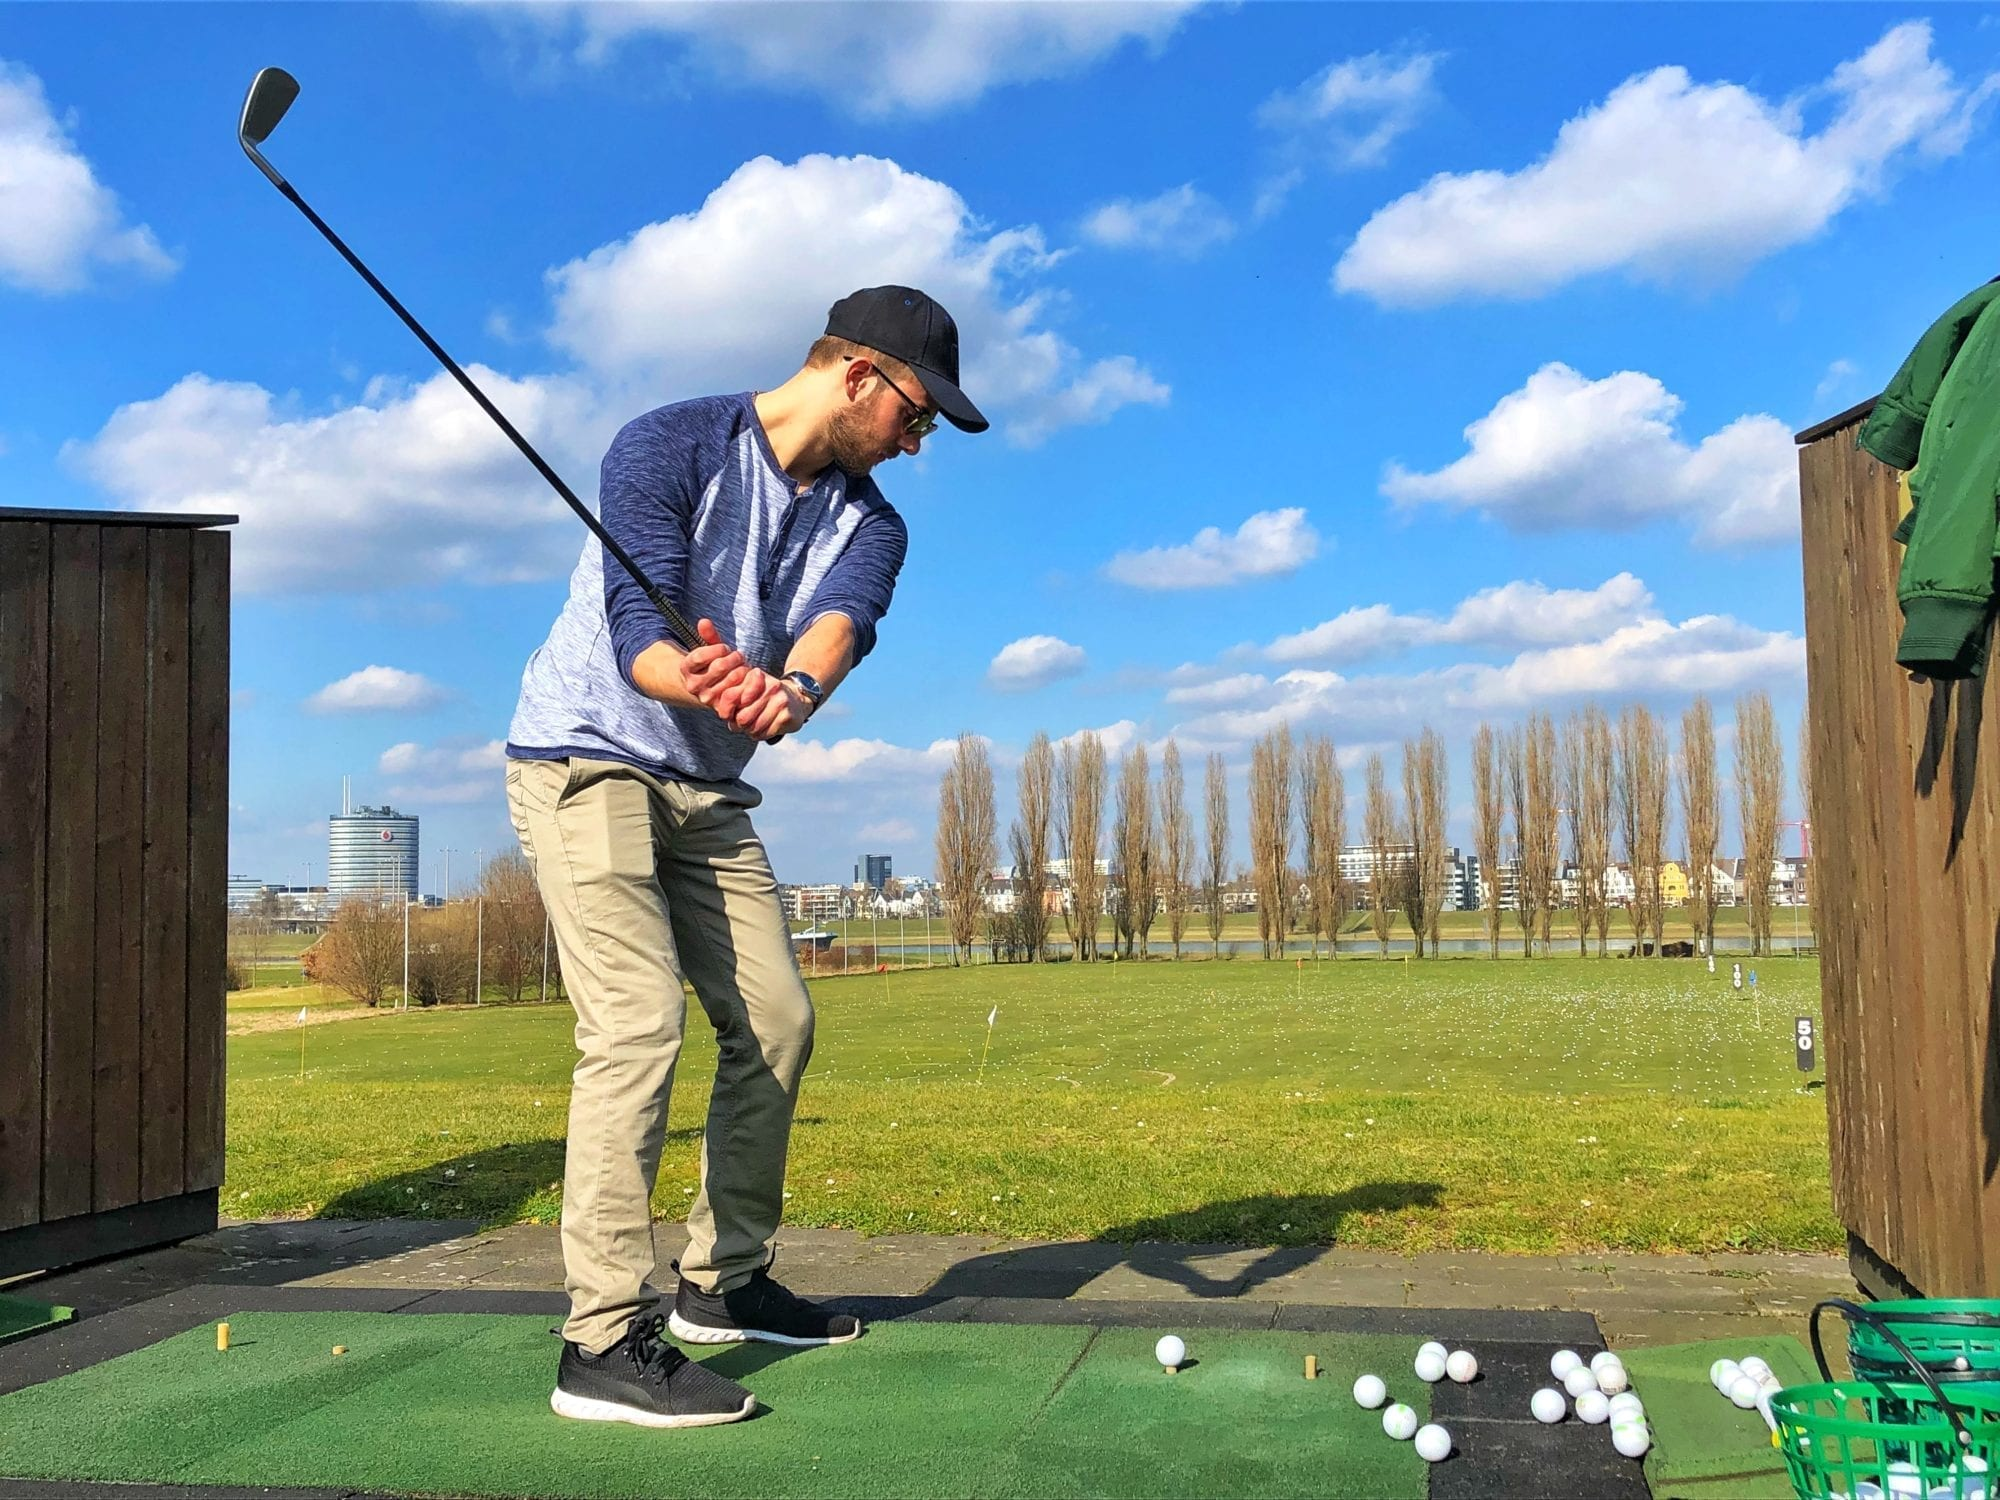 Have You Been to the GSV Golfing Range Before?